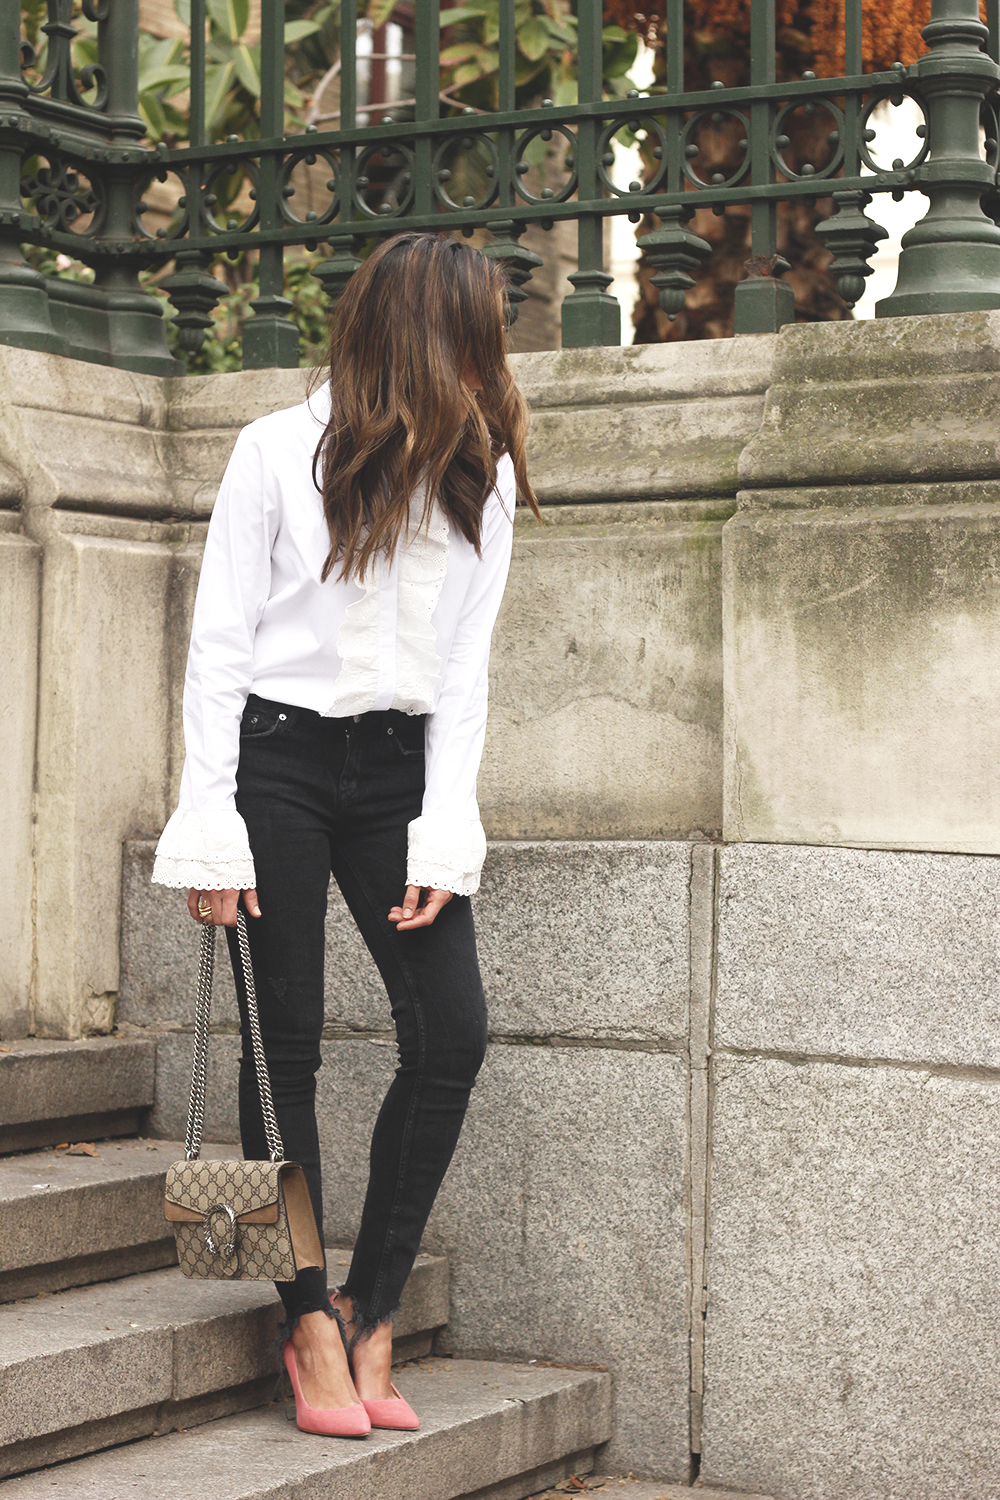 White ruffled shirt pink heels black jeans uterqüe gucci bag céline outfit style02